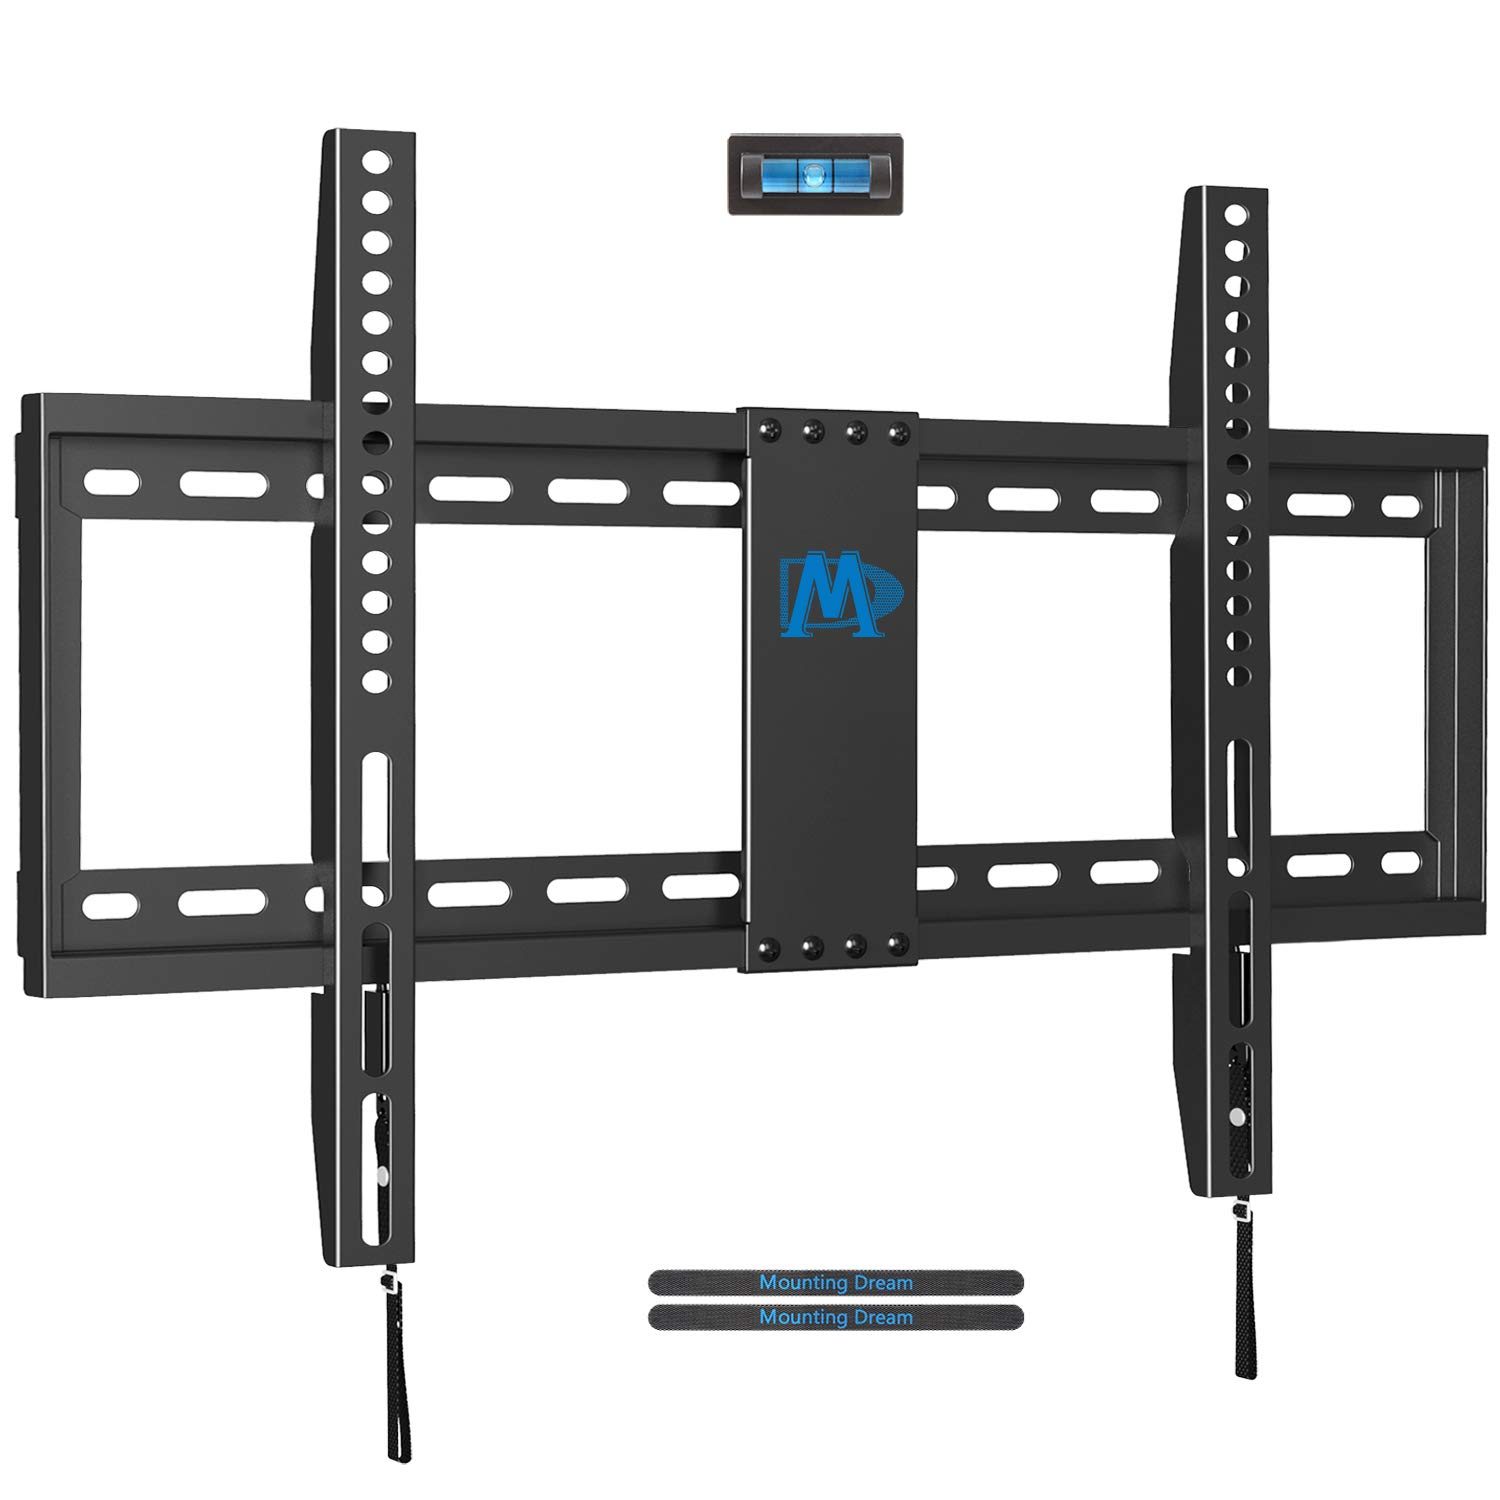 c253e5d2e56a8 Mounting Dream Low Profile Fixed TV Wall Mount Bracket for Most 42-70 Inch  LED